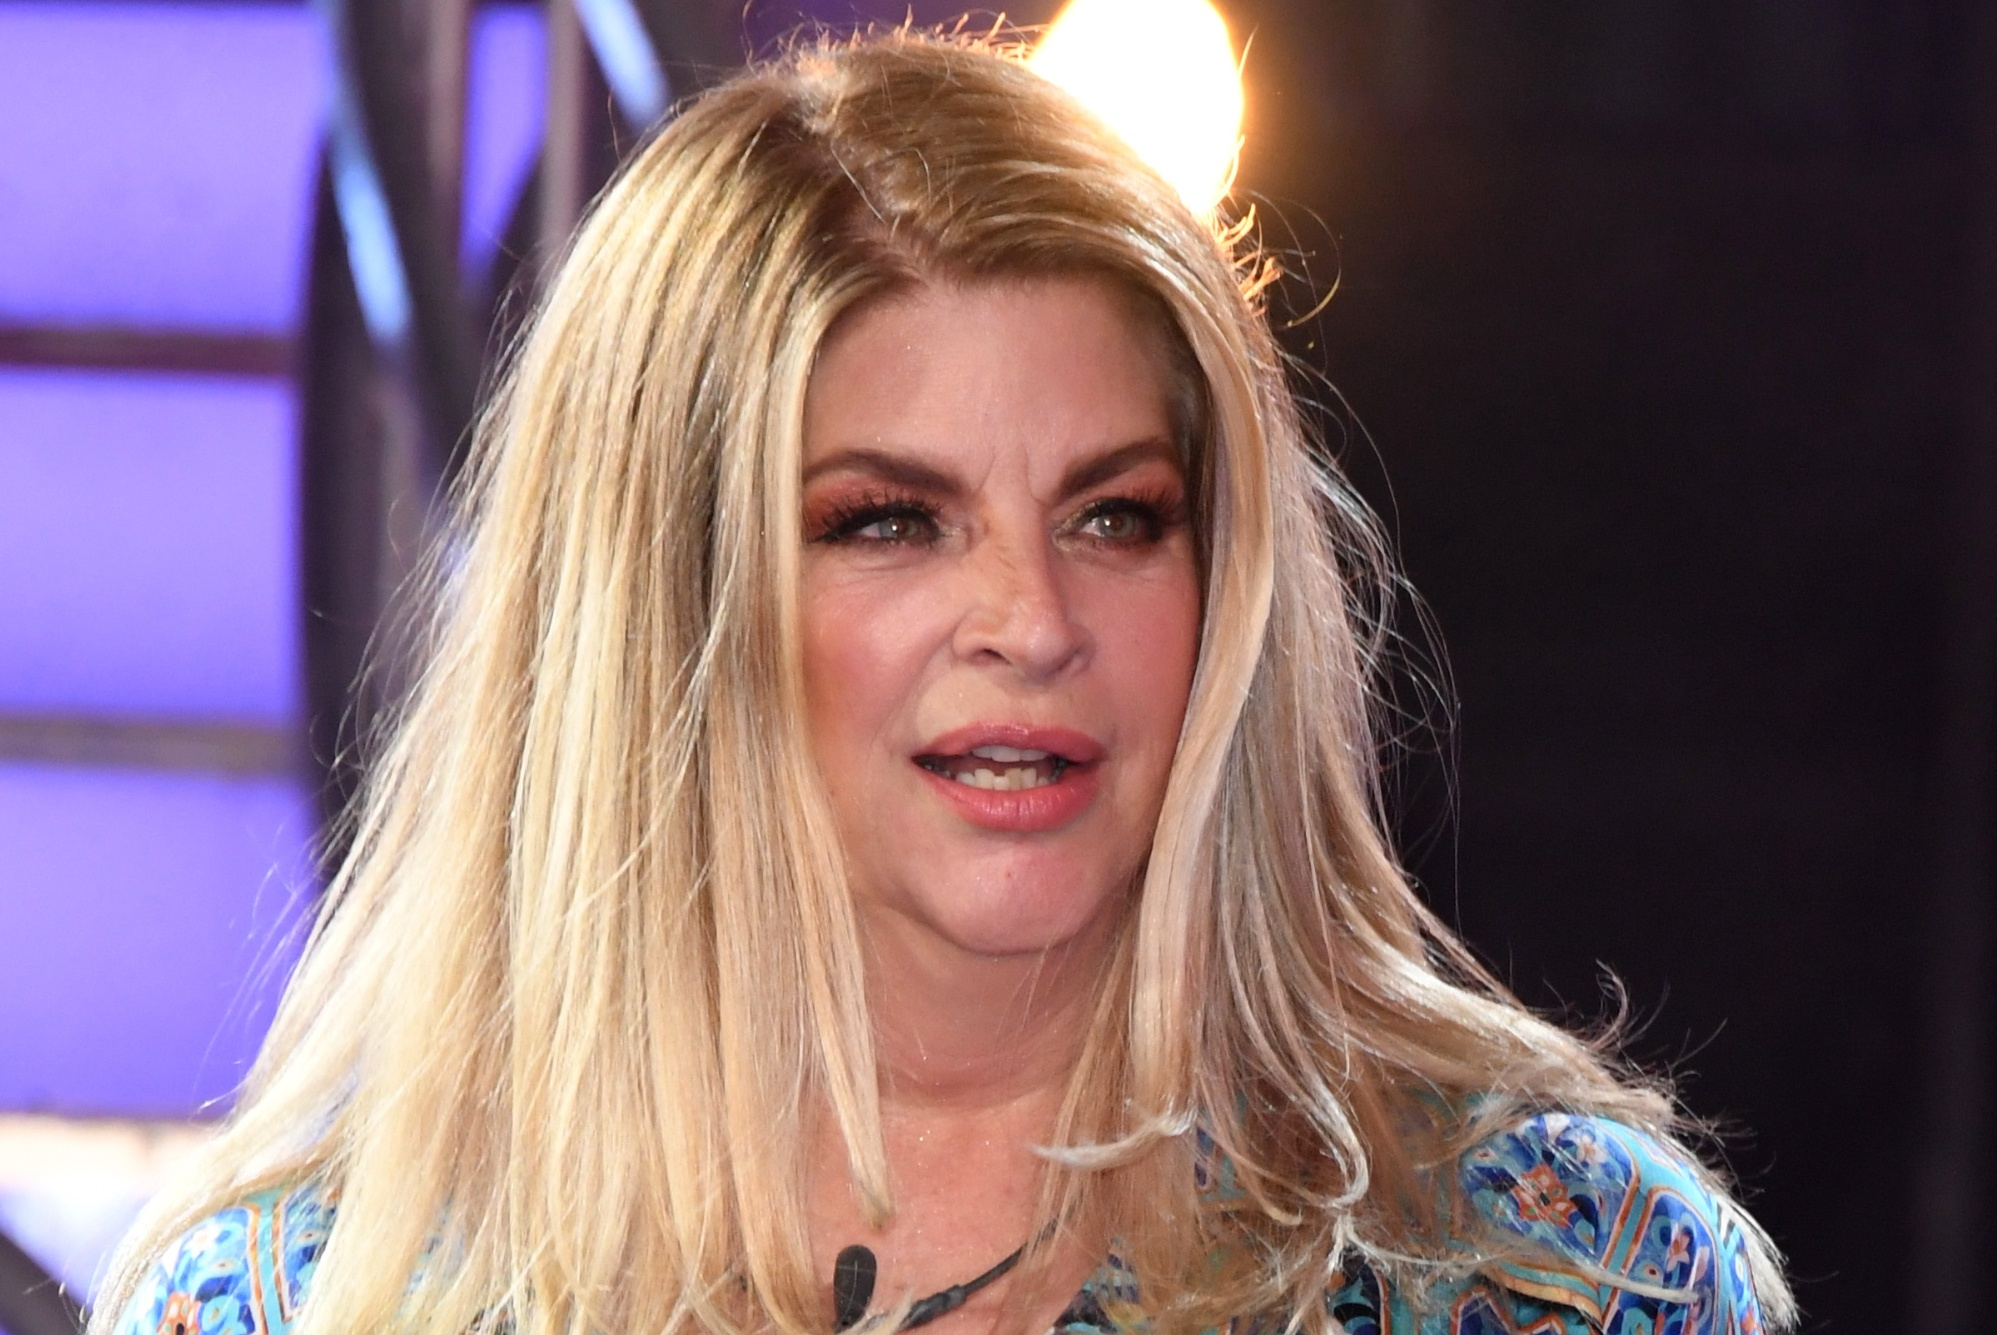 Kirstie Alley rips Twitter, compares Trump's ban to 'slavery'